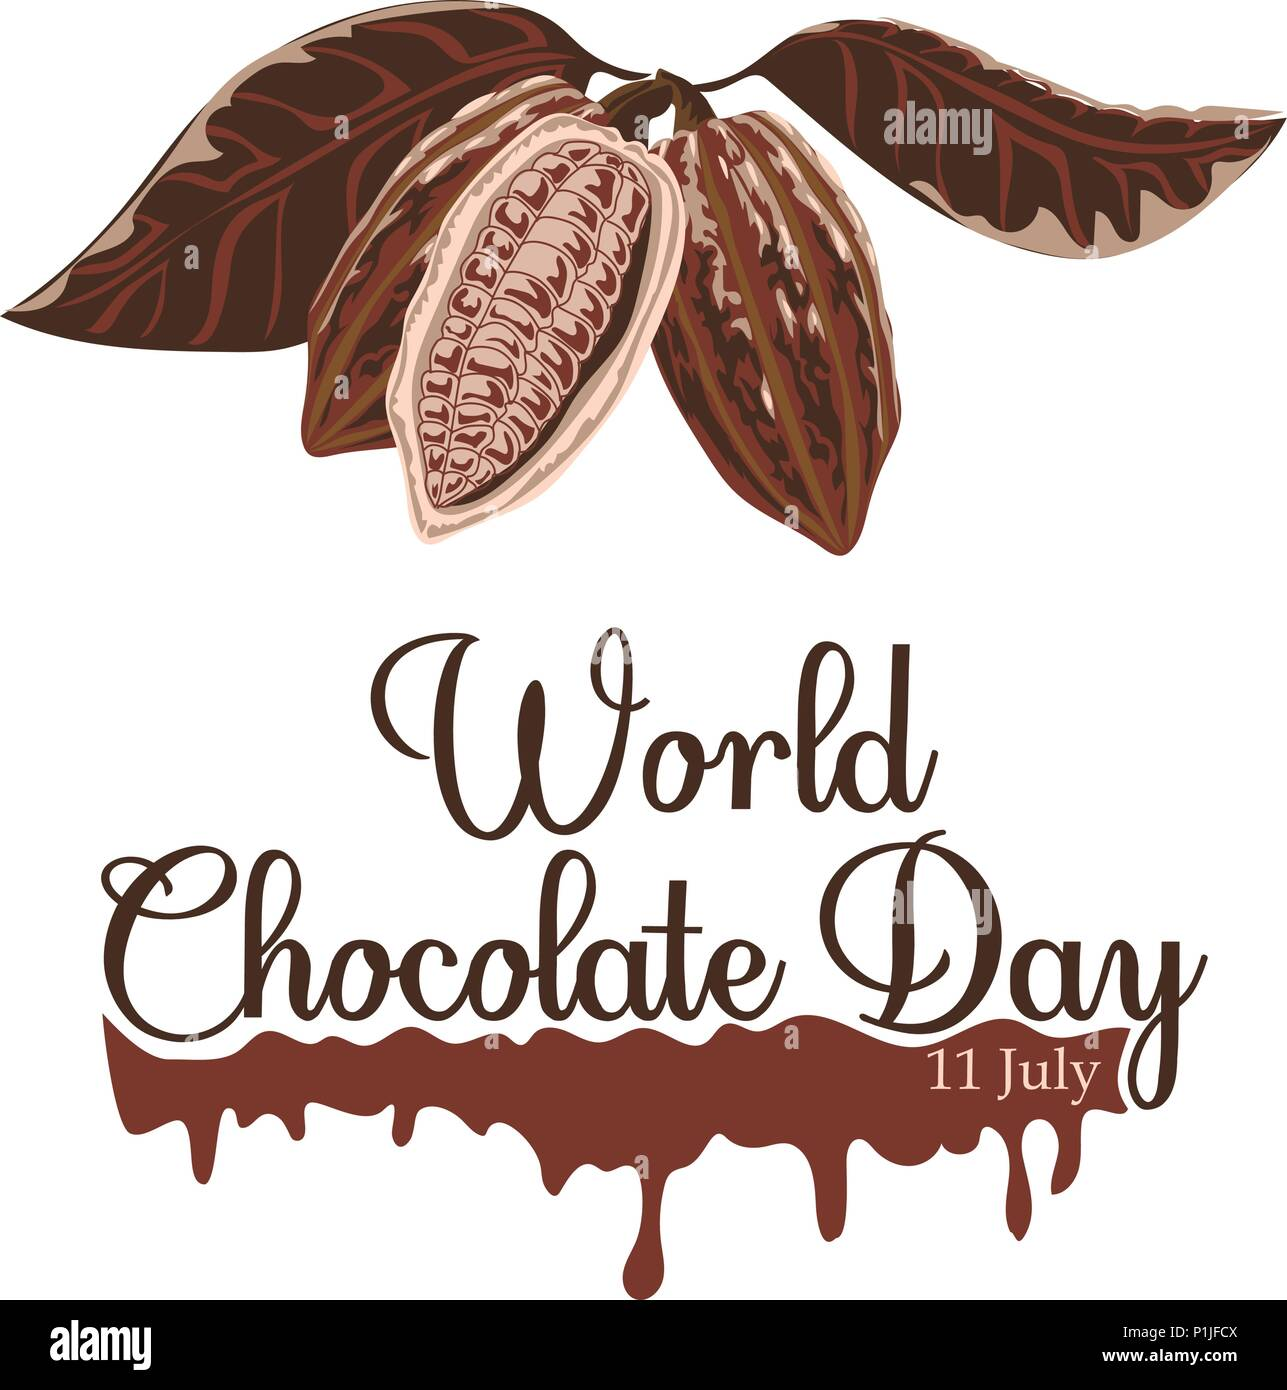 Vector illustration for World Chocolate Day in creative background. Happy chocolate day handwritten lettering. - Stock Vector